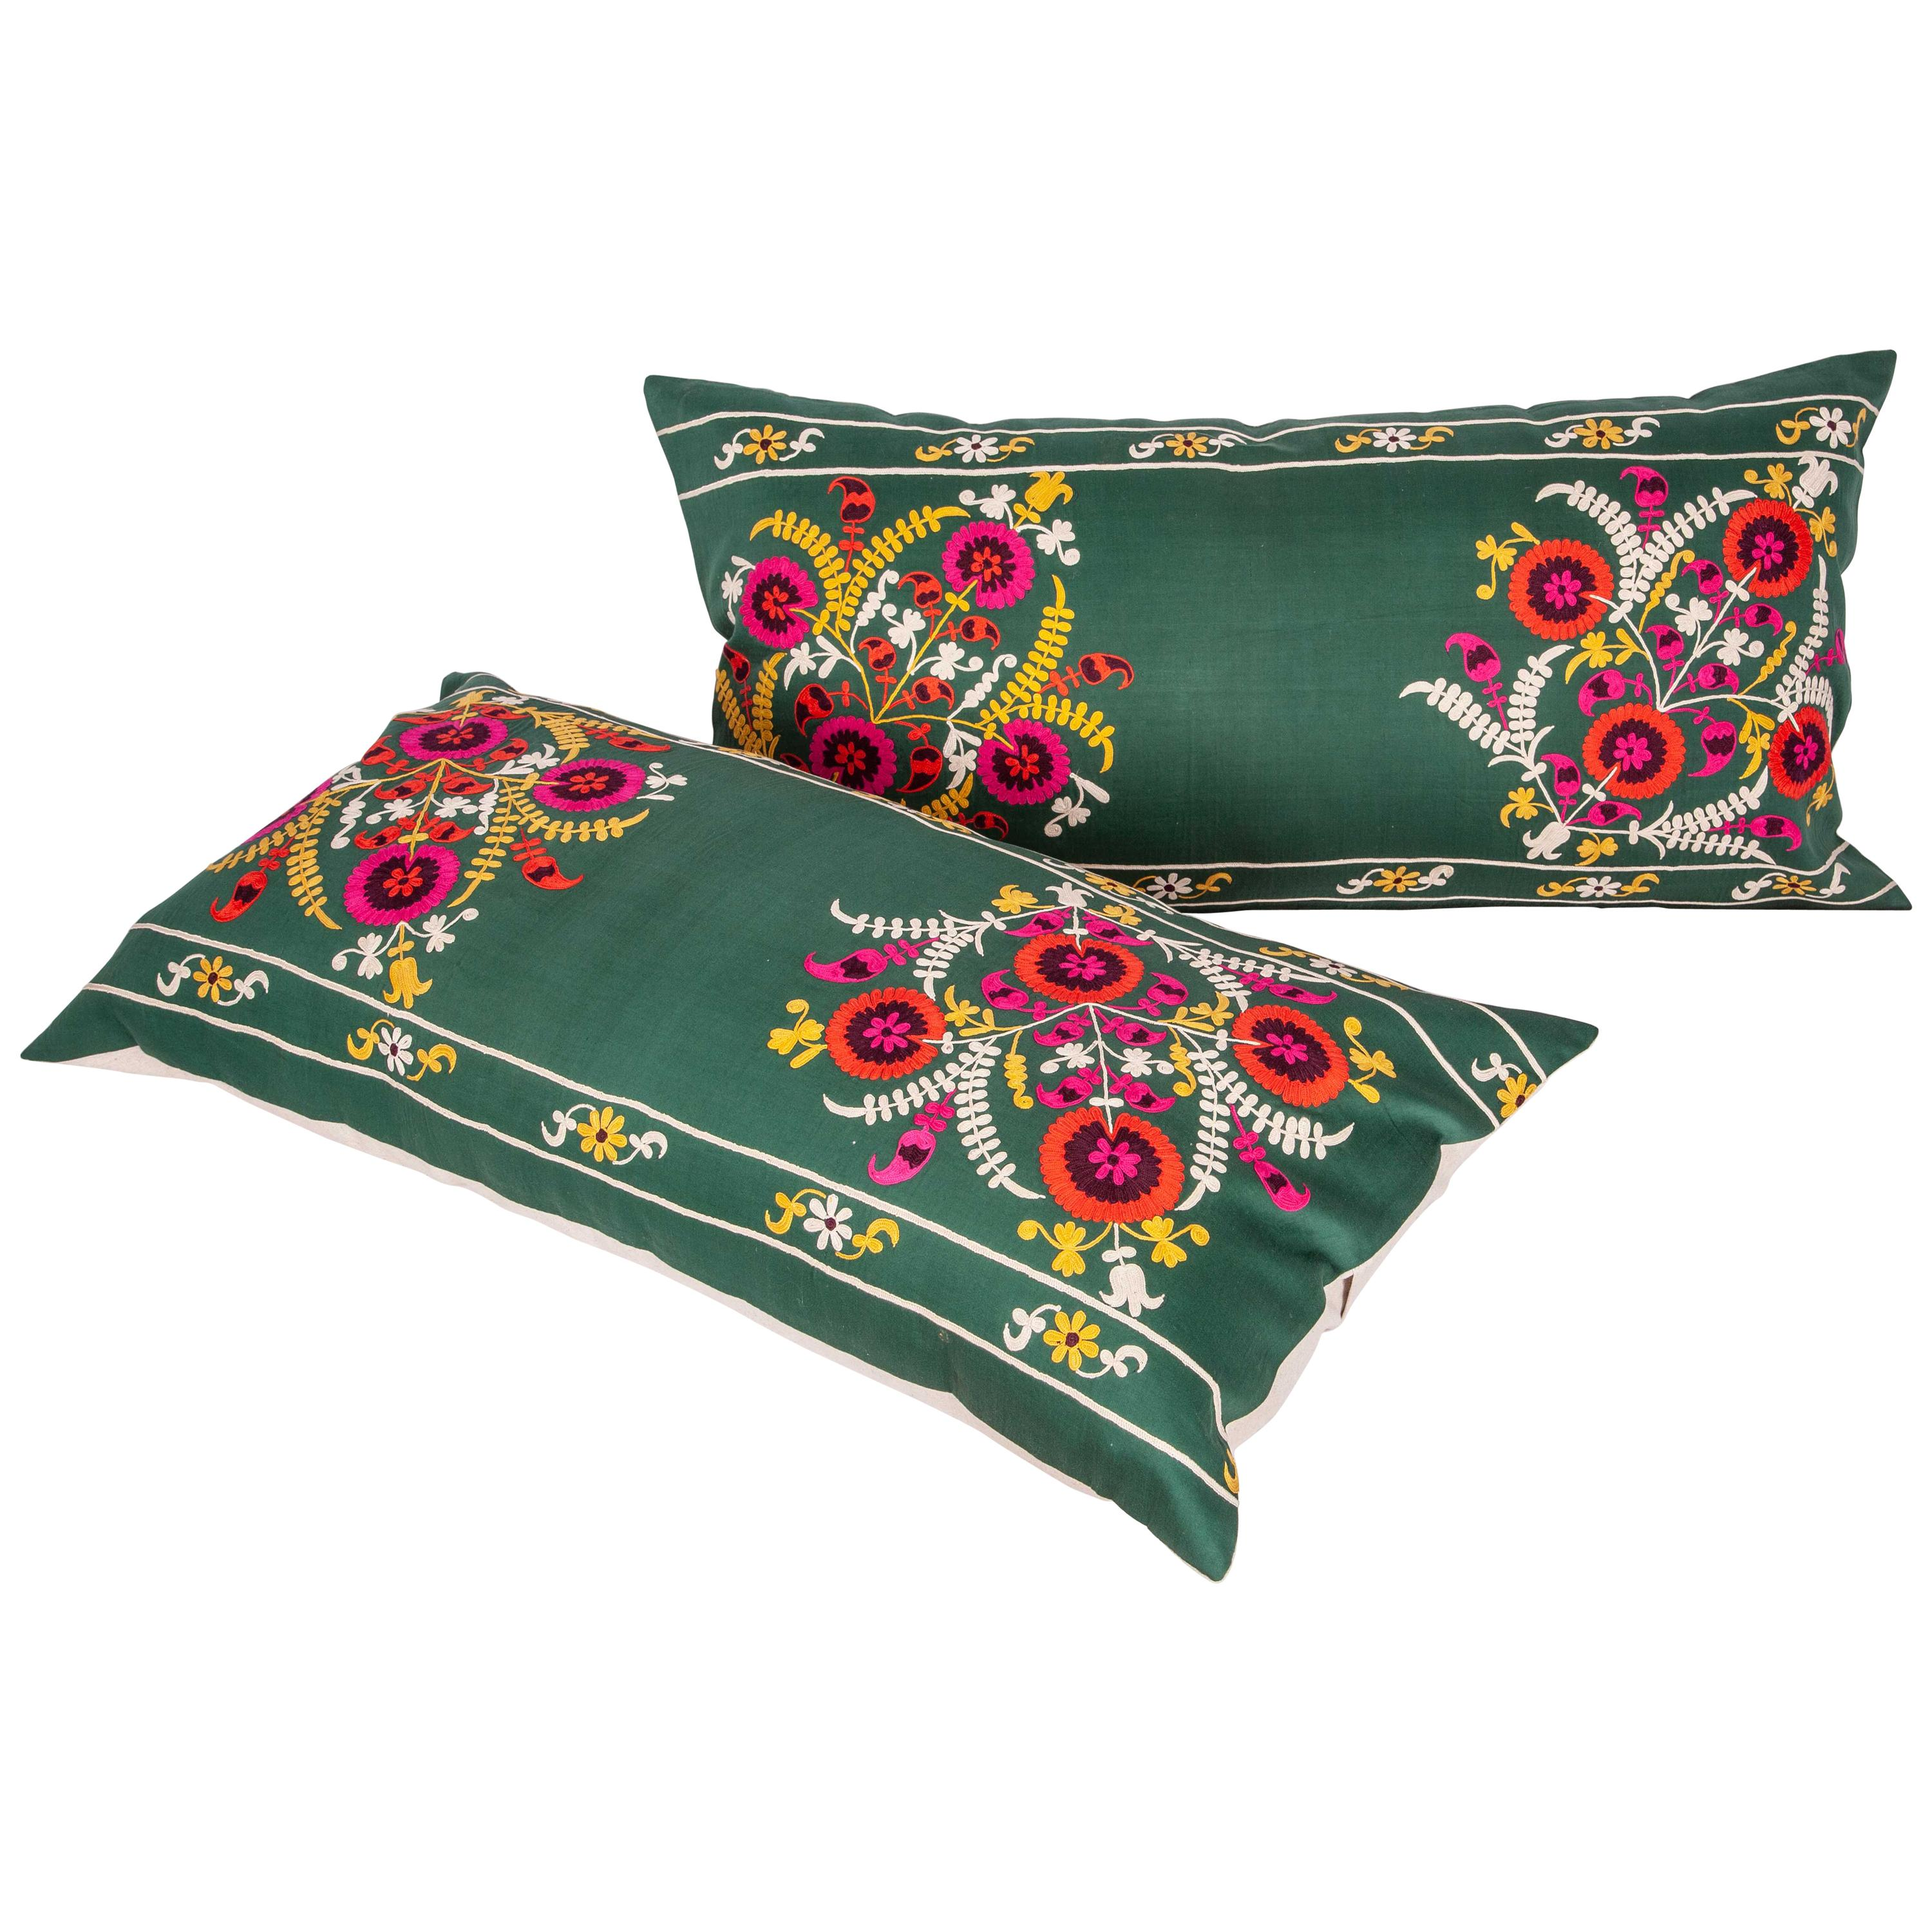 Vintage Suzani Pillow Case, Cuhion Cover, Mid-20th Century